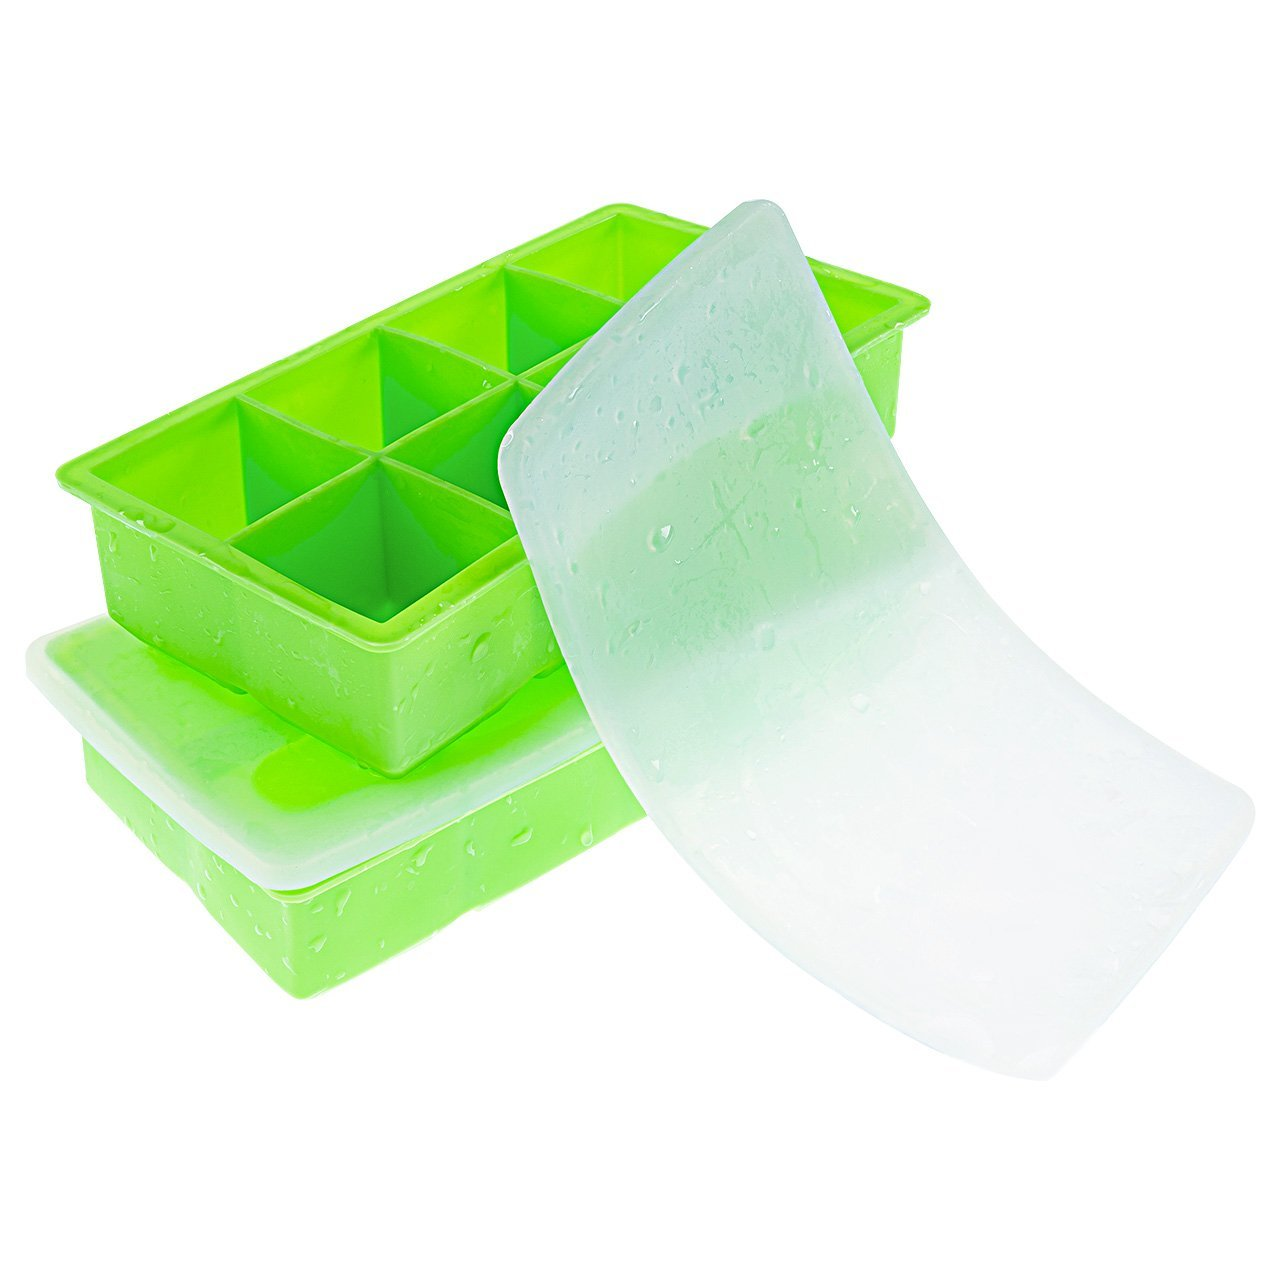 OMorc Ice Cube Trays 2 Pack,100% Silicone Easy Release, 2 inch Large Square Cubes, Flexible and Stackable Ice Trays with Spill-Resistant Removable Lid, BPA Free and Dishwasher Safe